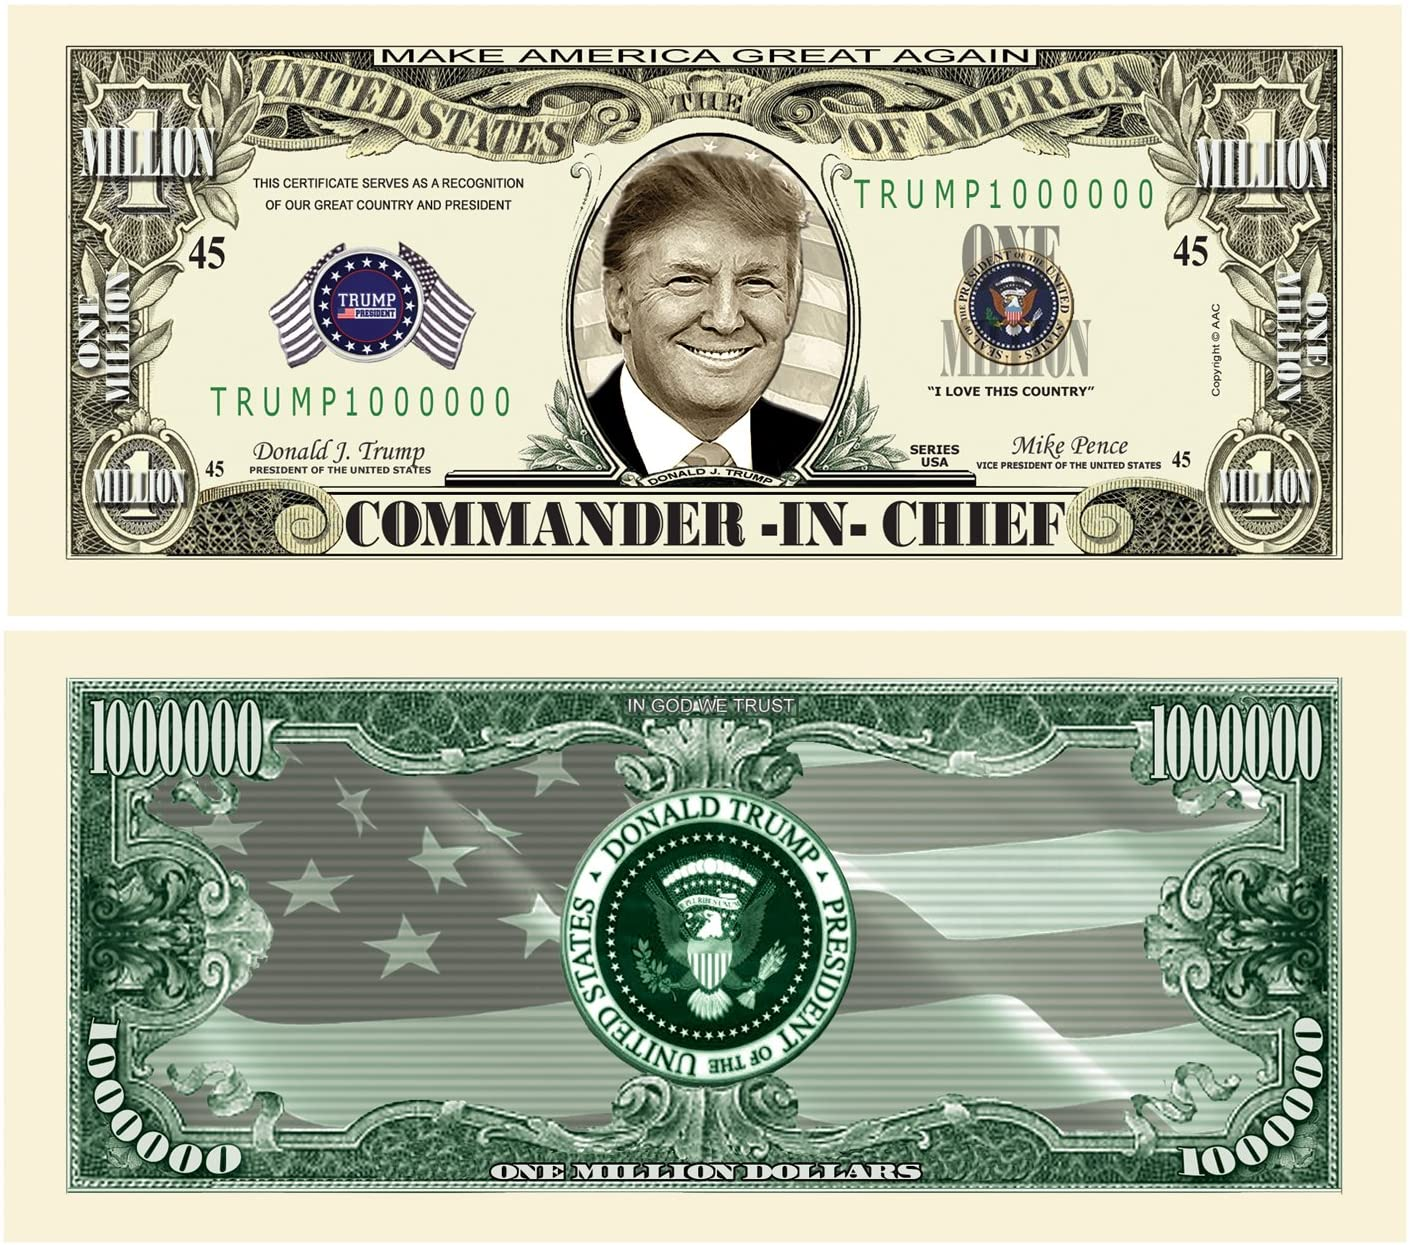 American Art Classics Pack of 25 - Donald Trump Commander in Chief Presidential Limited Edition Million Dollar Bill